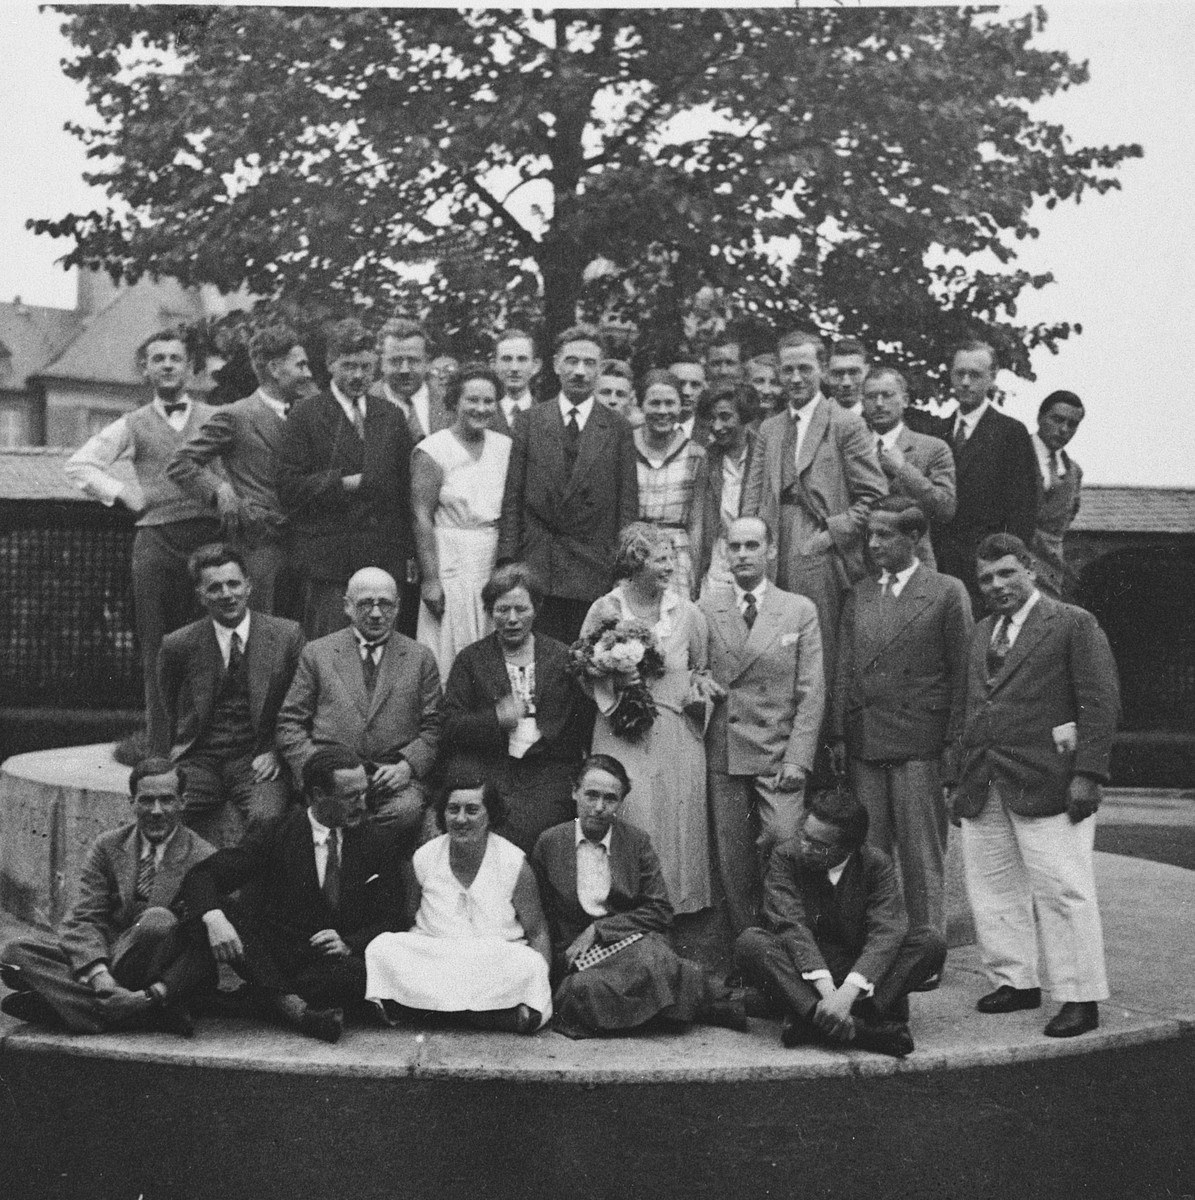 Staff of the Kaiser Wilhelm Institute celebrate the wedding of two of its members.  The bride (standing, second row) is Gretl Magnus who was librarian and secretary of Prof. Herbert Freundlich.  The groom is Dr. Zander, a jurist.  They immigrated to England.  Most of the staff members of the Kaiser Wilhelm Institute were Jewish.